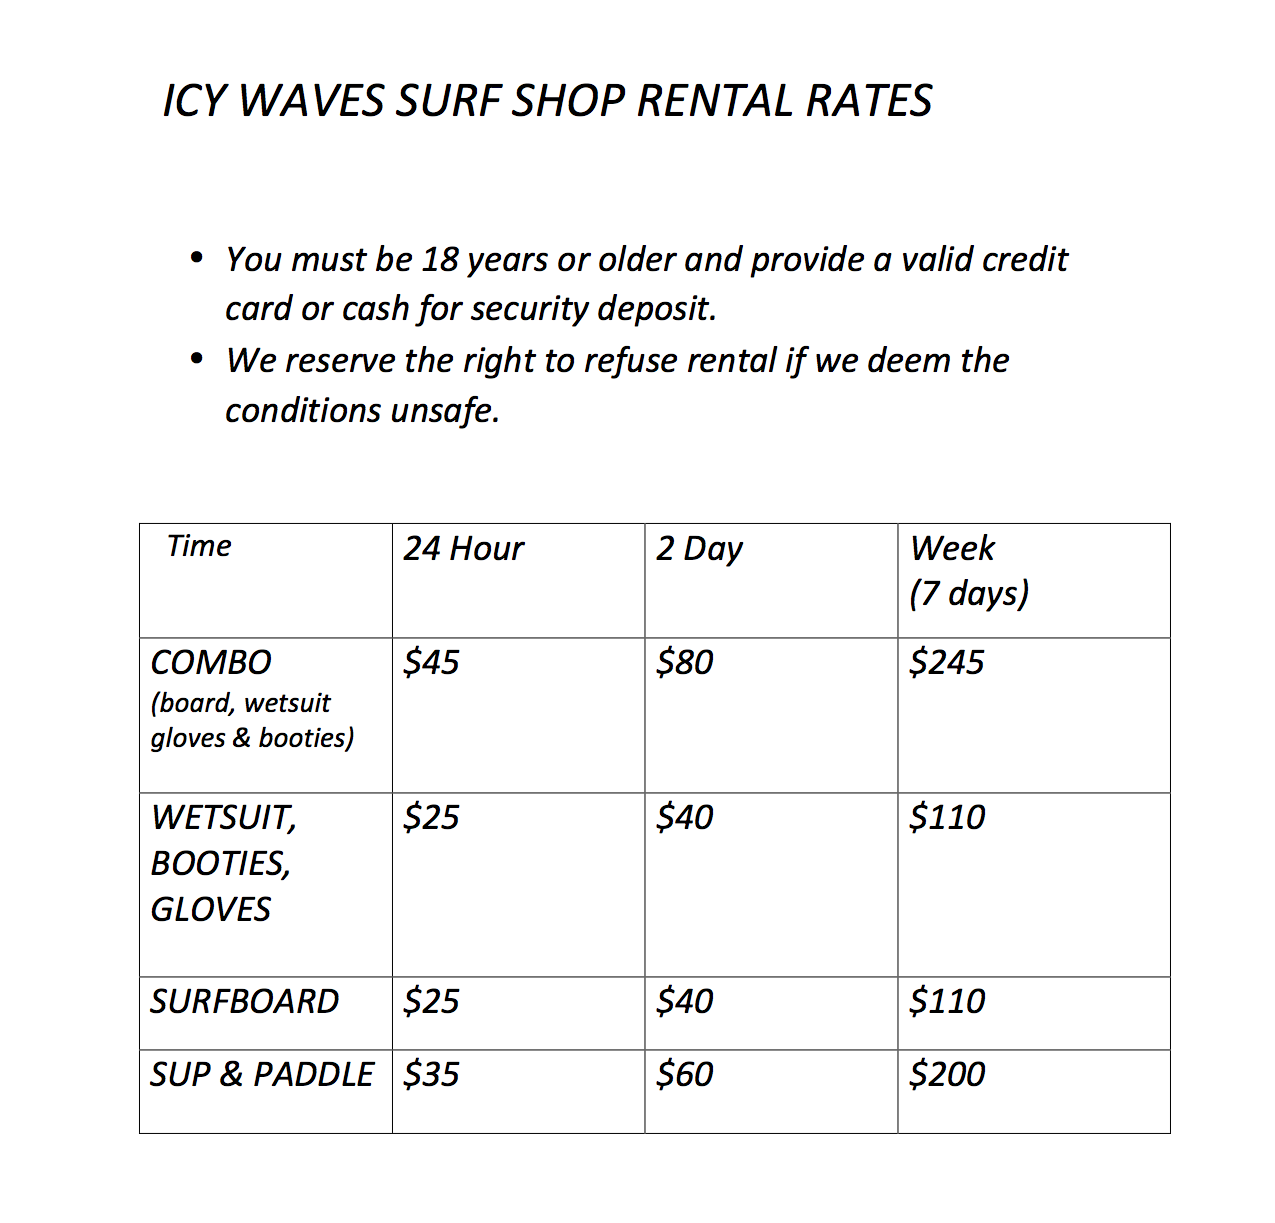 ICY WAVES SURFSHOP RENTAL RATES.png